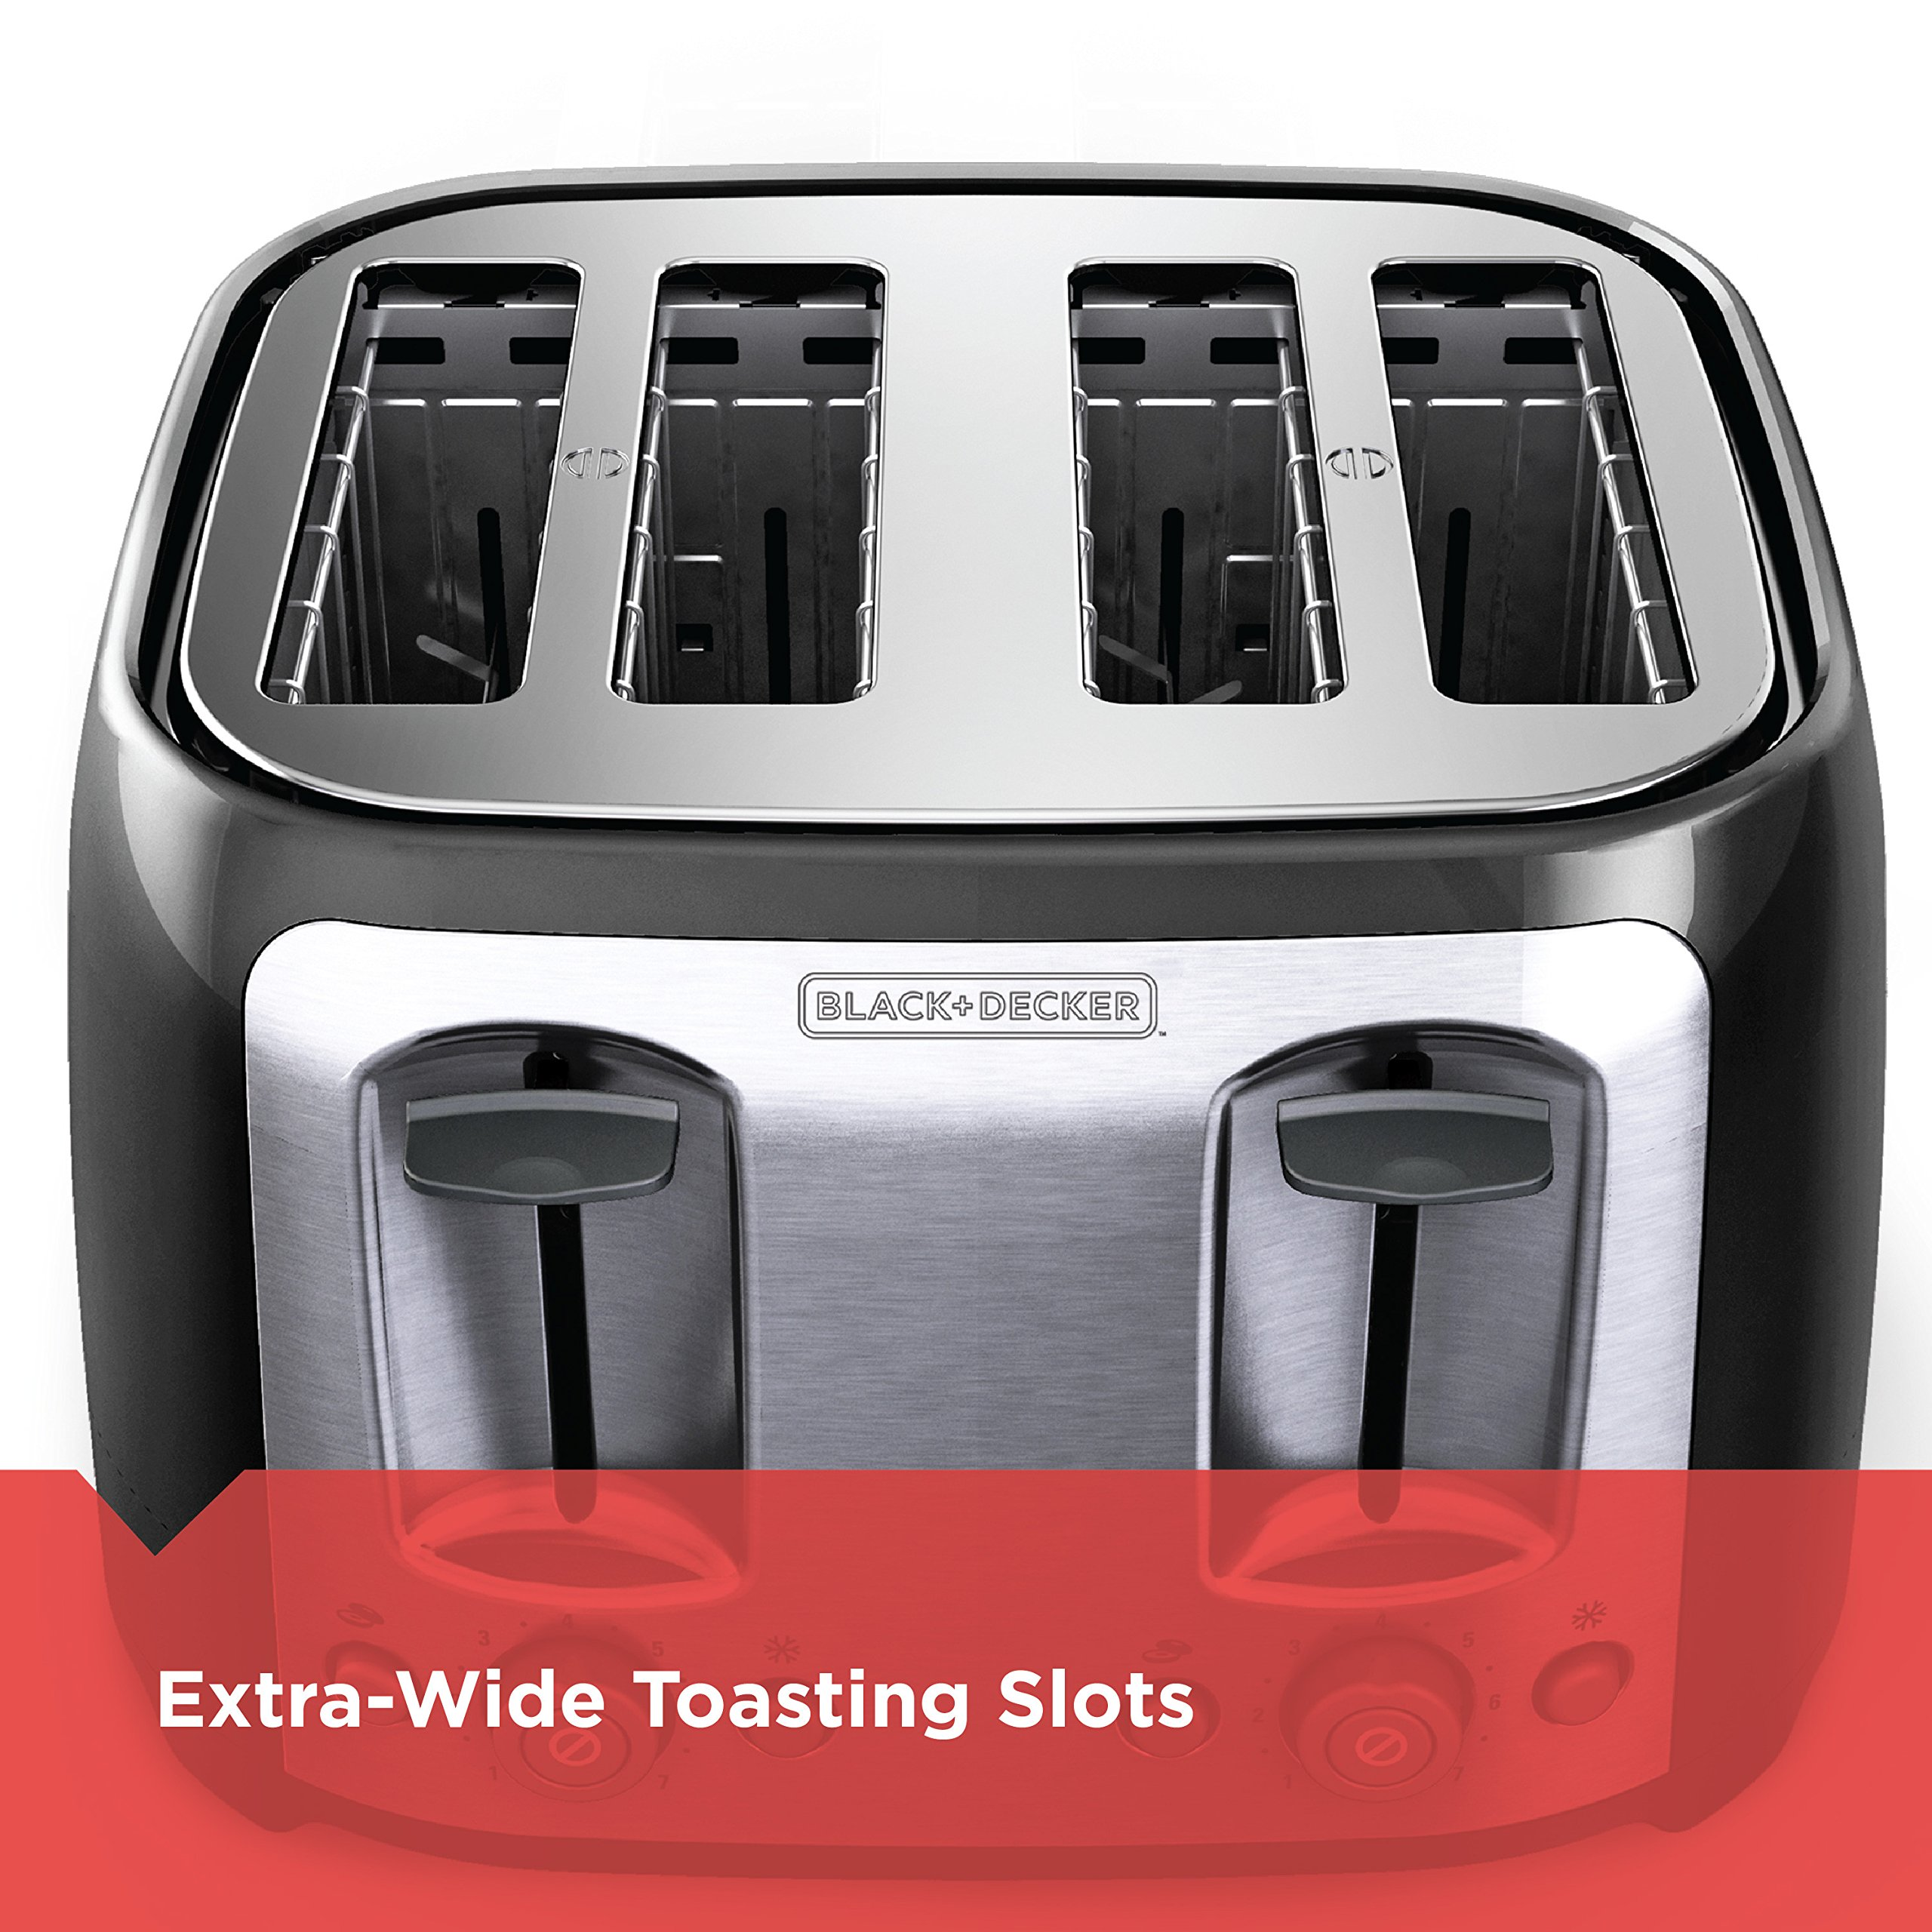 BLACK+DECKER 4-Slice Toaster, Classic Oval, Black with Stainless Steel Accents, TR1478BD by BLACK+DECKER (Image #3)